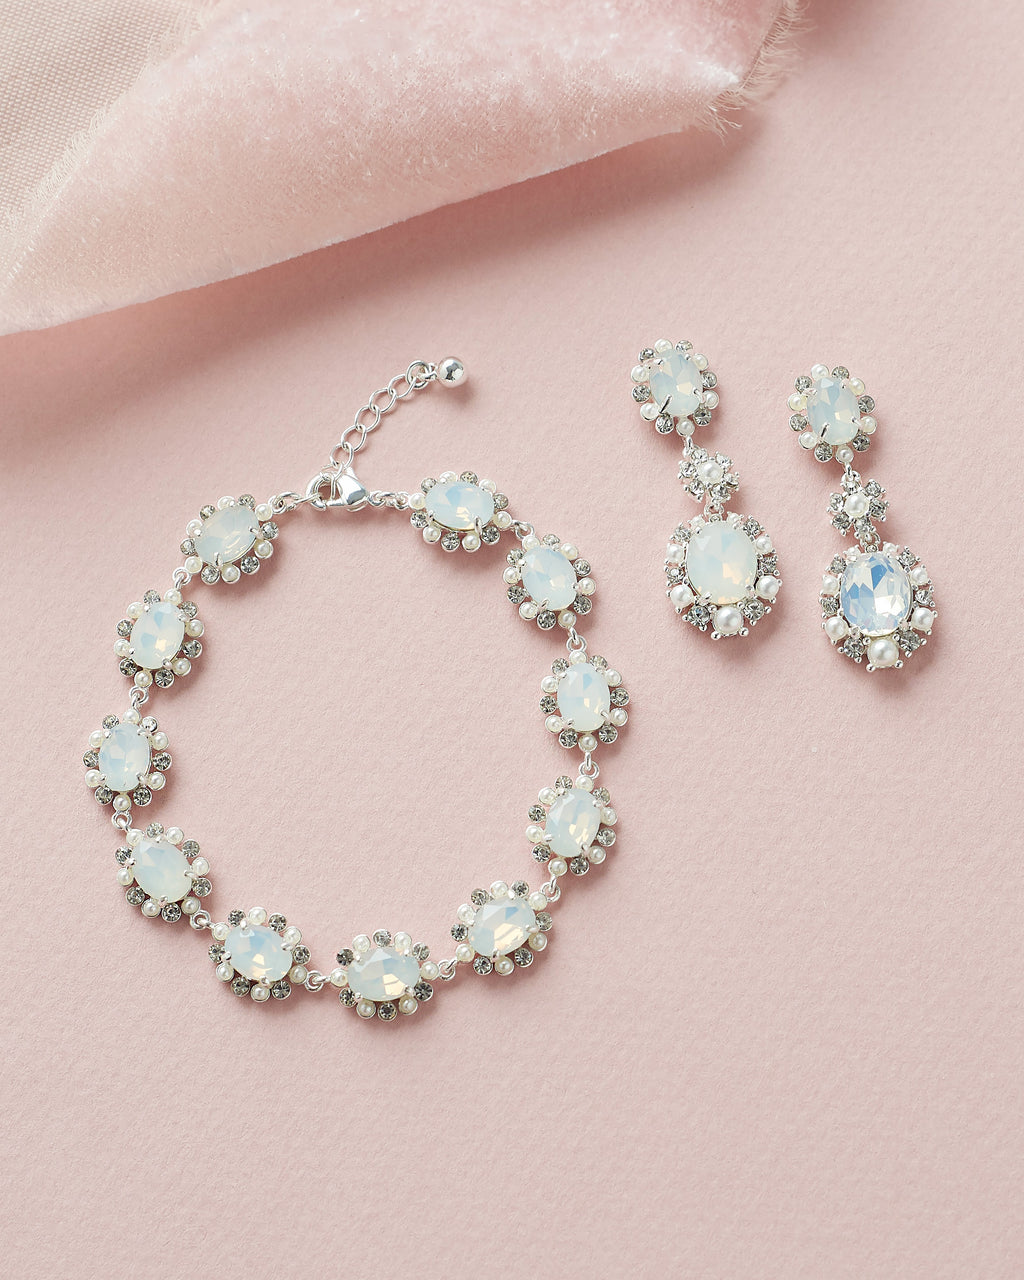 Silver Opal & Pearl Bridal Earrings & Bracelet Set